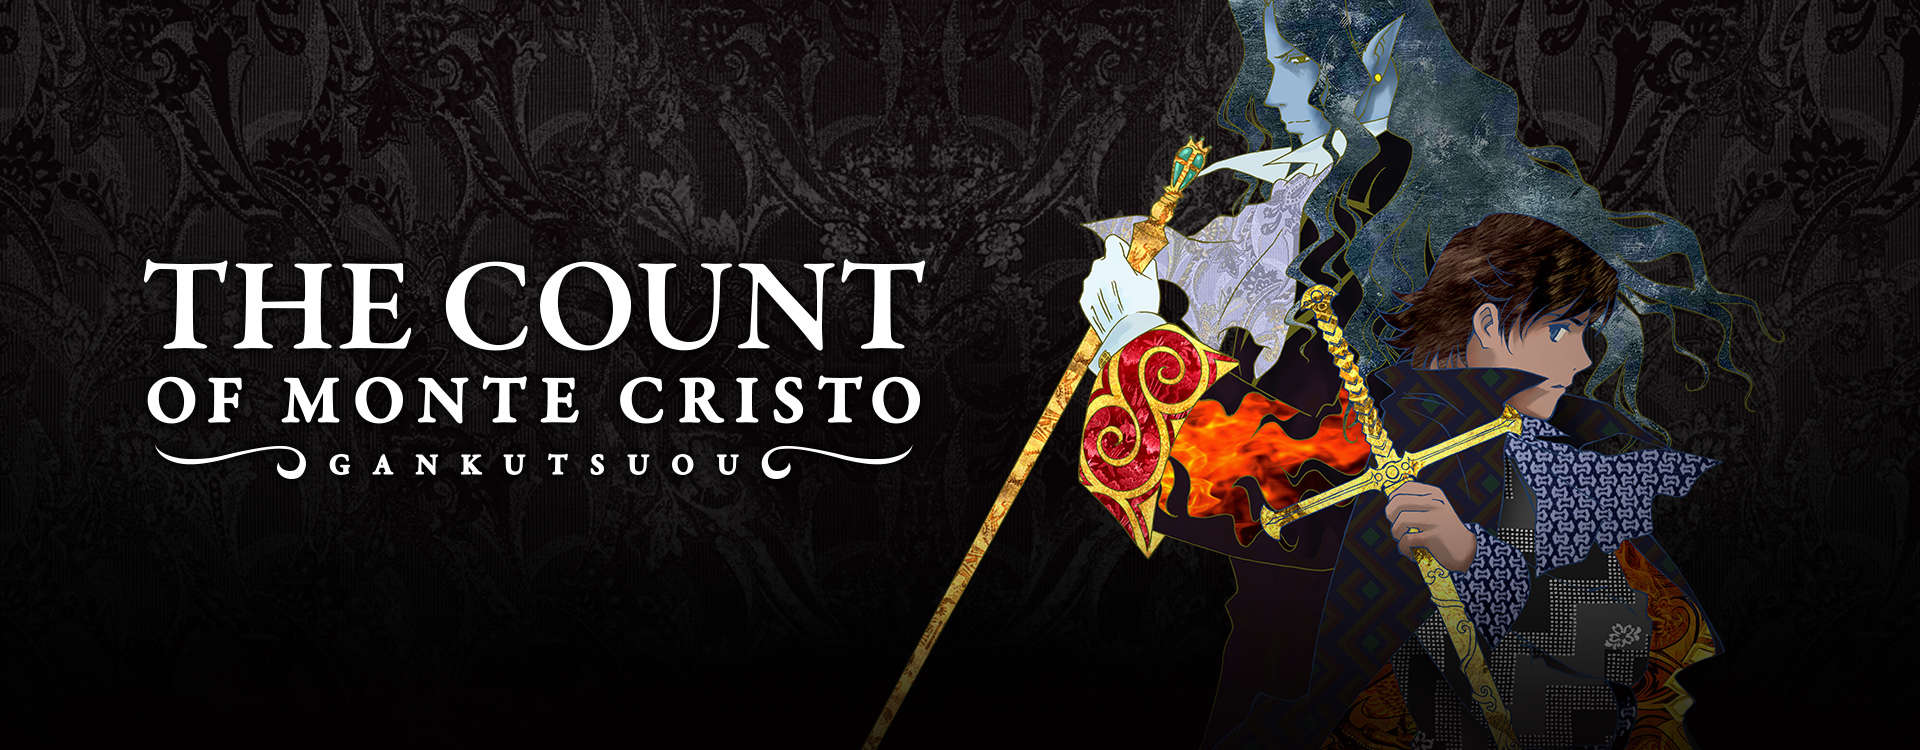 The Count of Monte Cristo: Gankutsuou